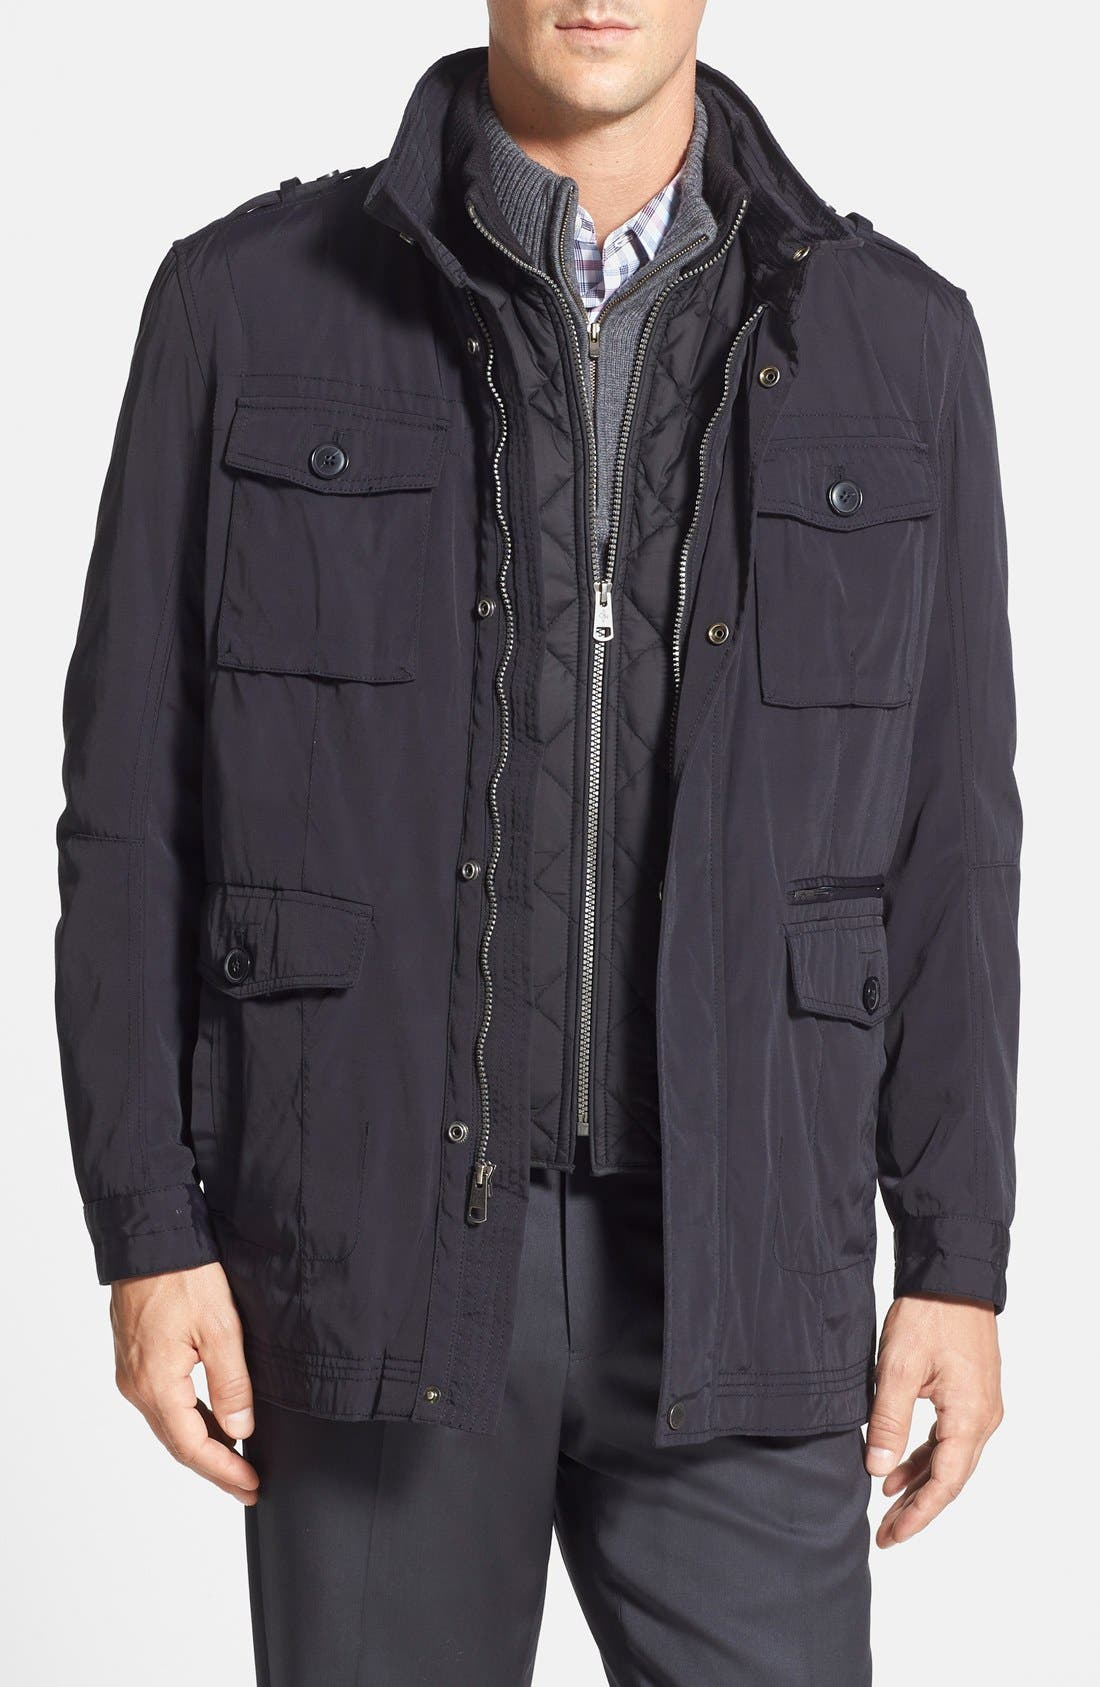 Alternate Image 1 Selected - Cole Haan 'Oxford Utility' Two-in-One Jacket